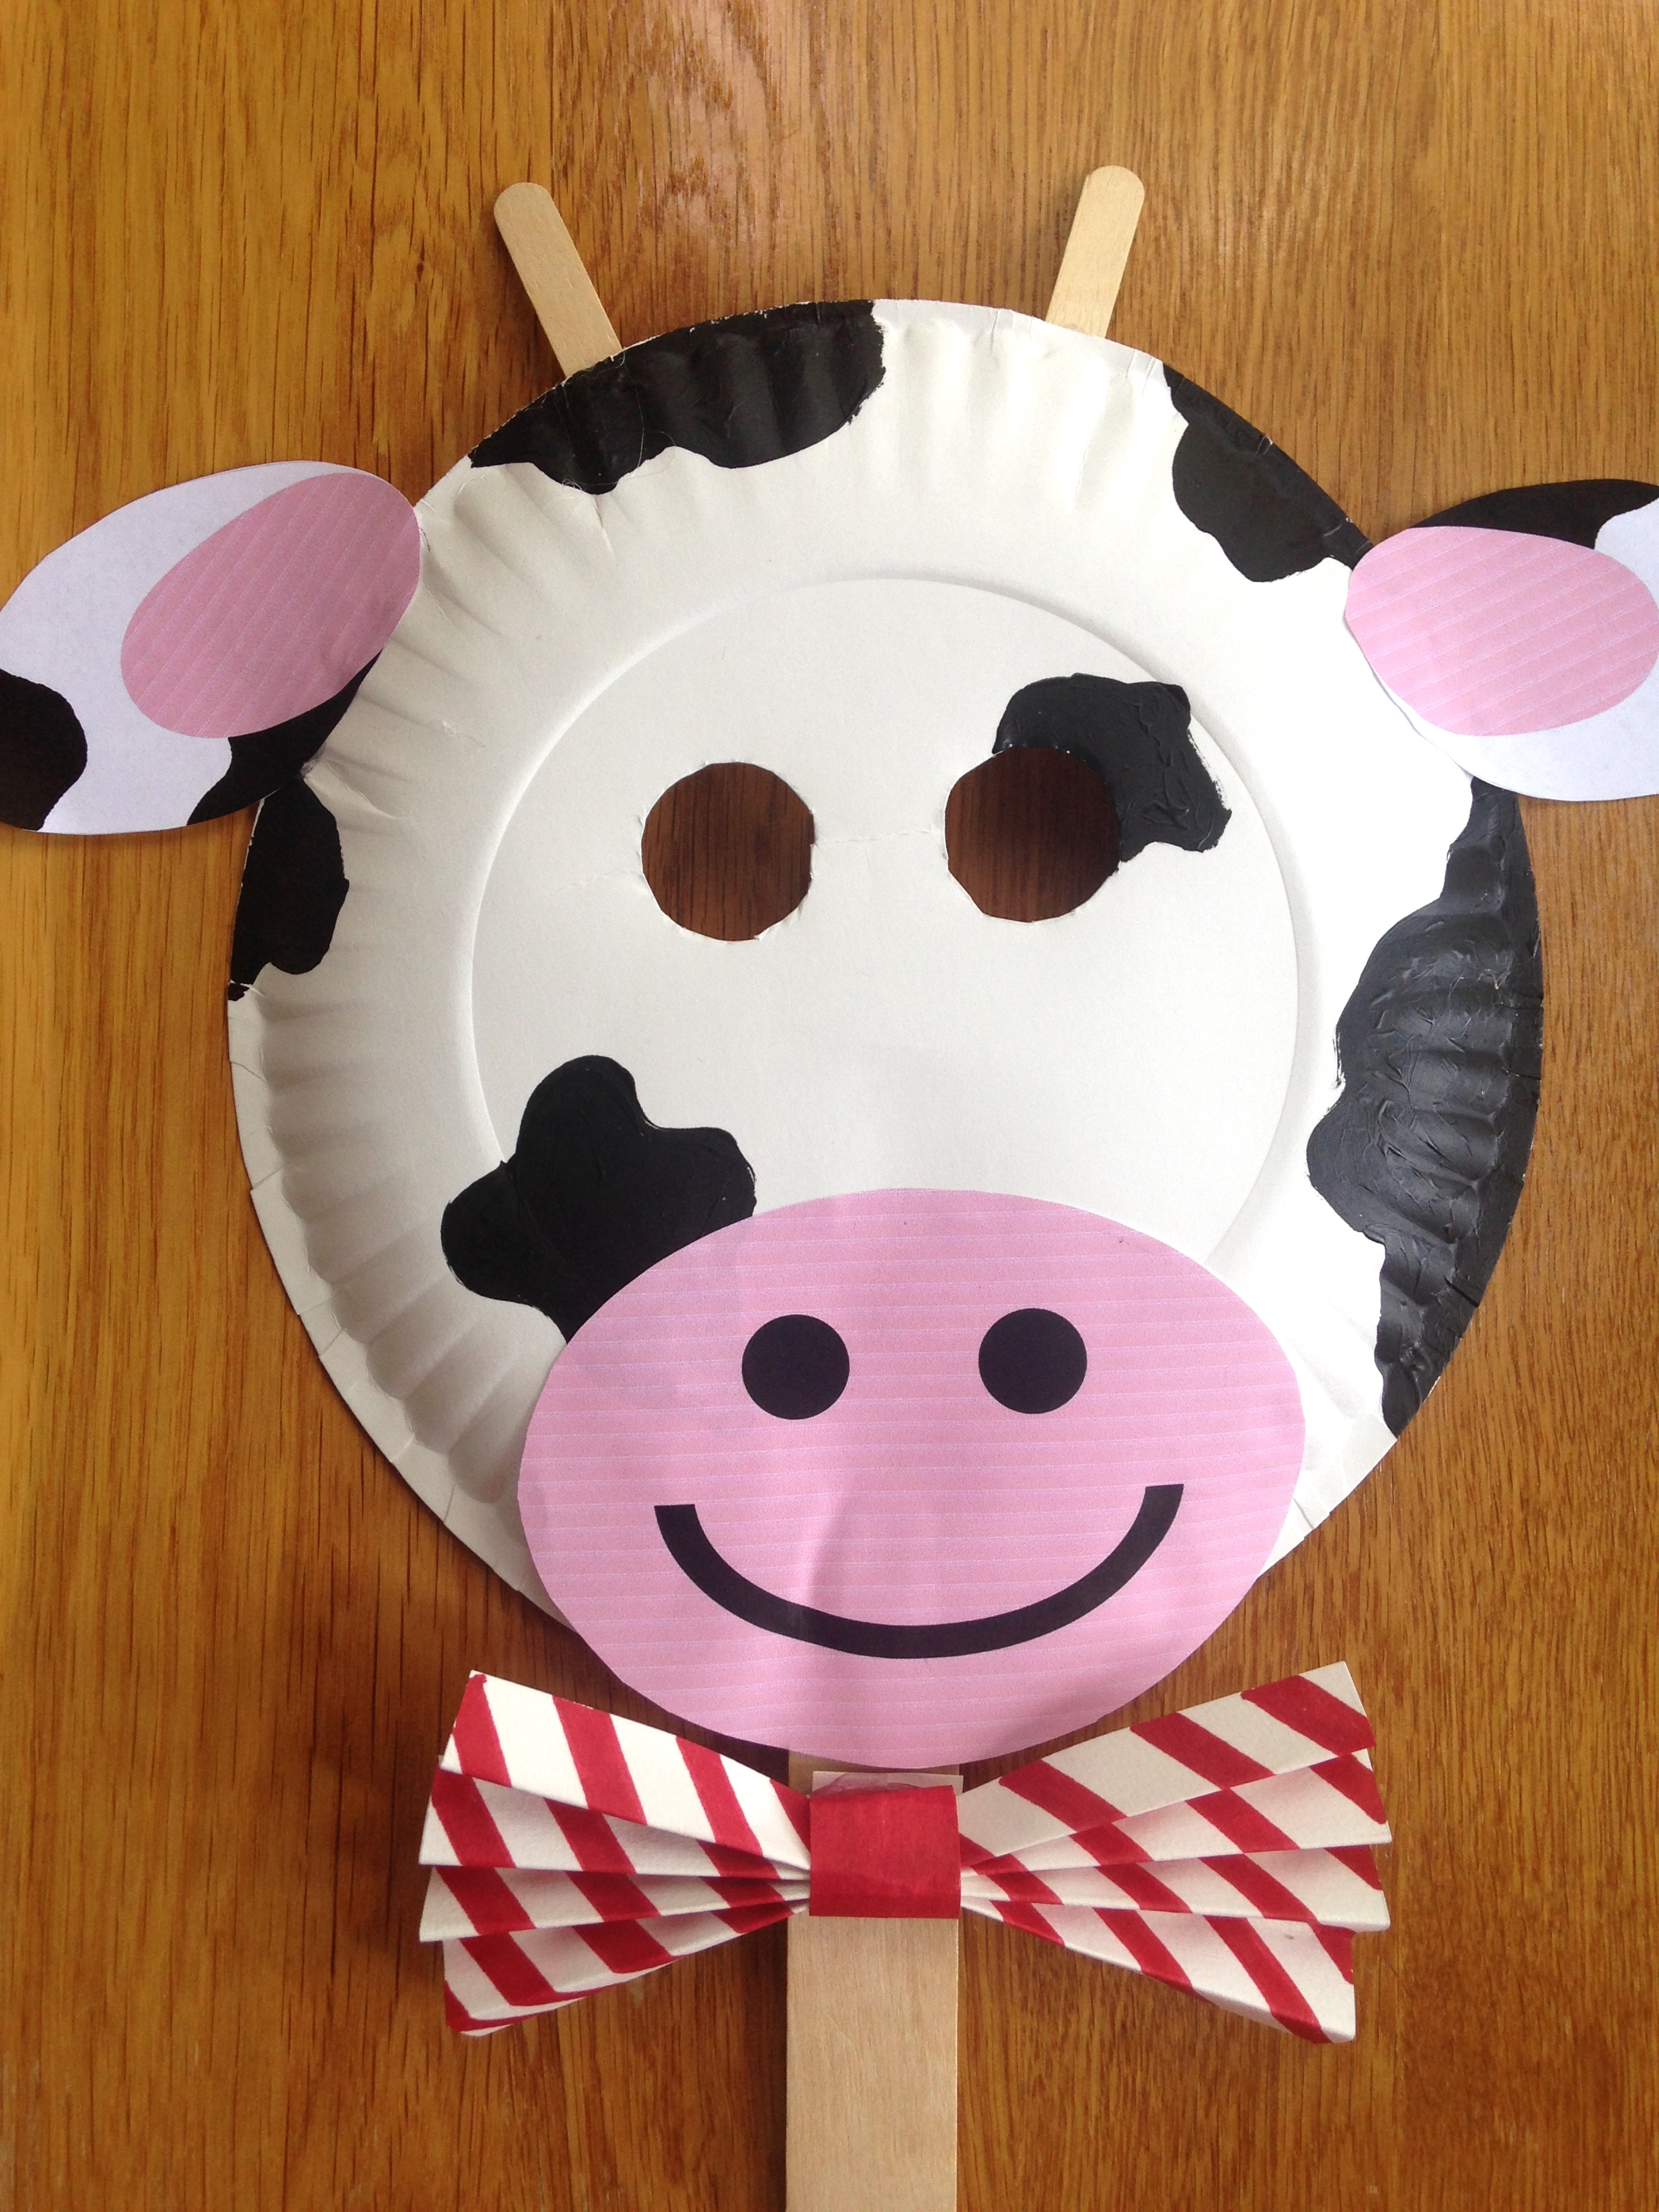 picture relating to Chick Fil a Cow Printable Costume called Chick-fil-A Cow Working day Paper Plate Cow Masks With Cost-free